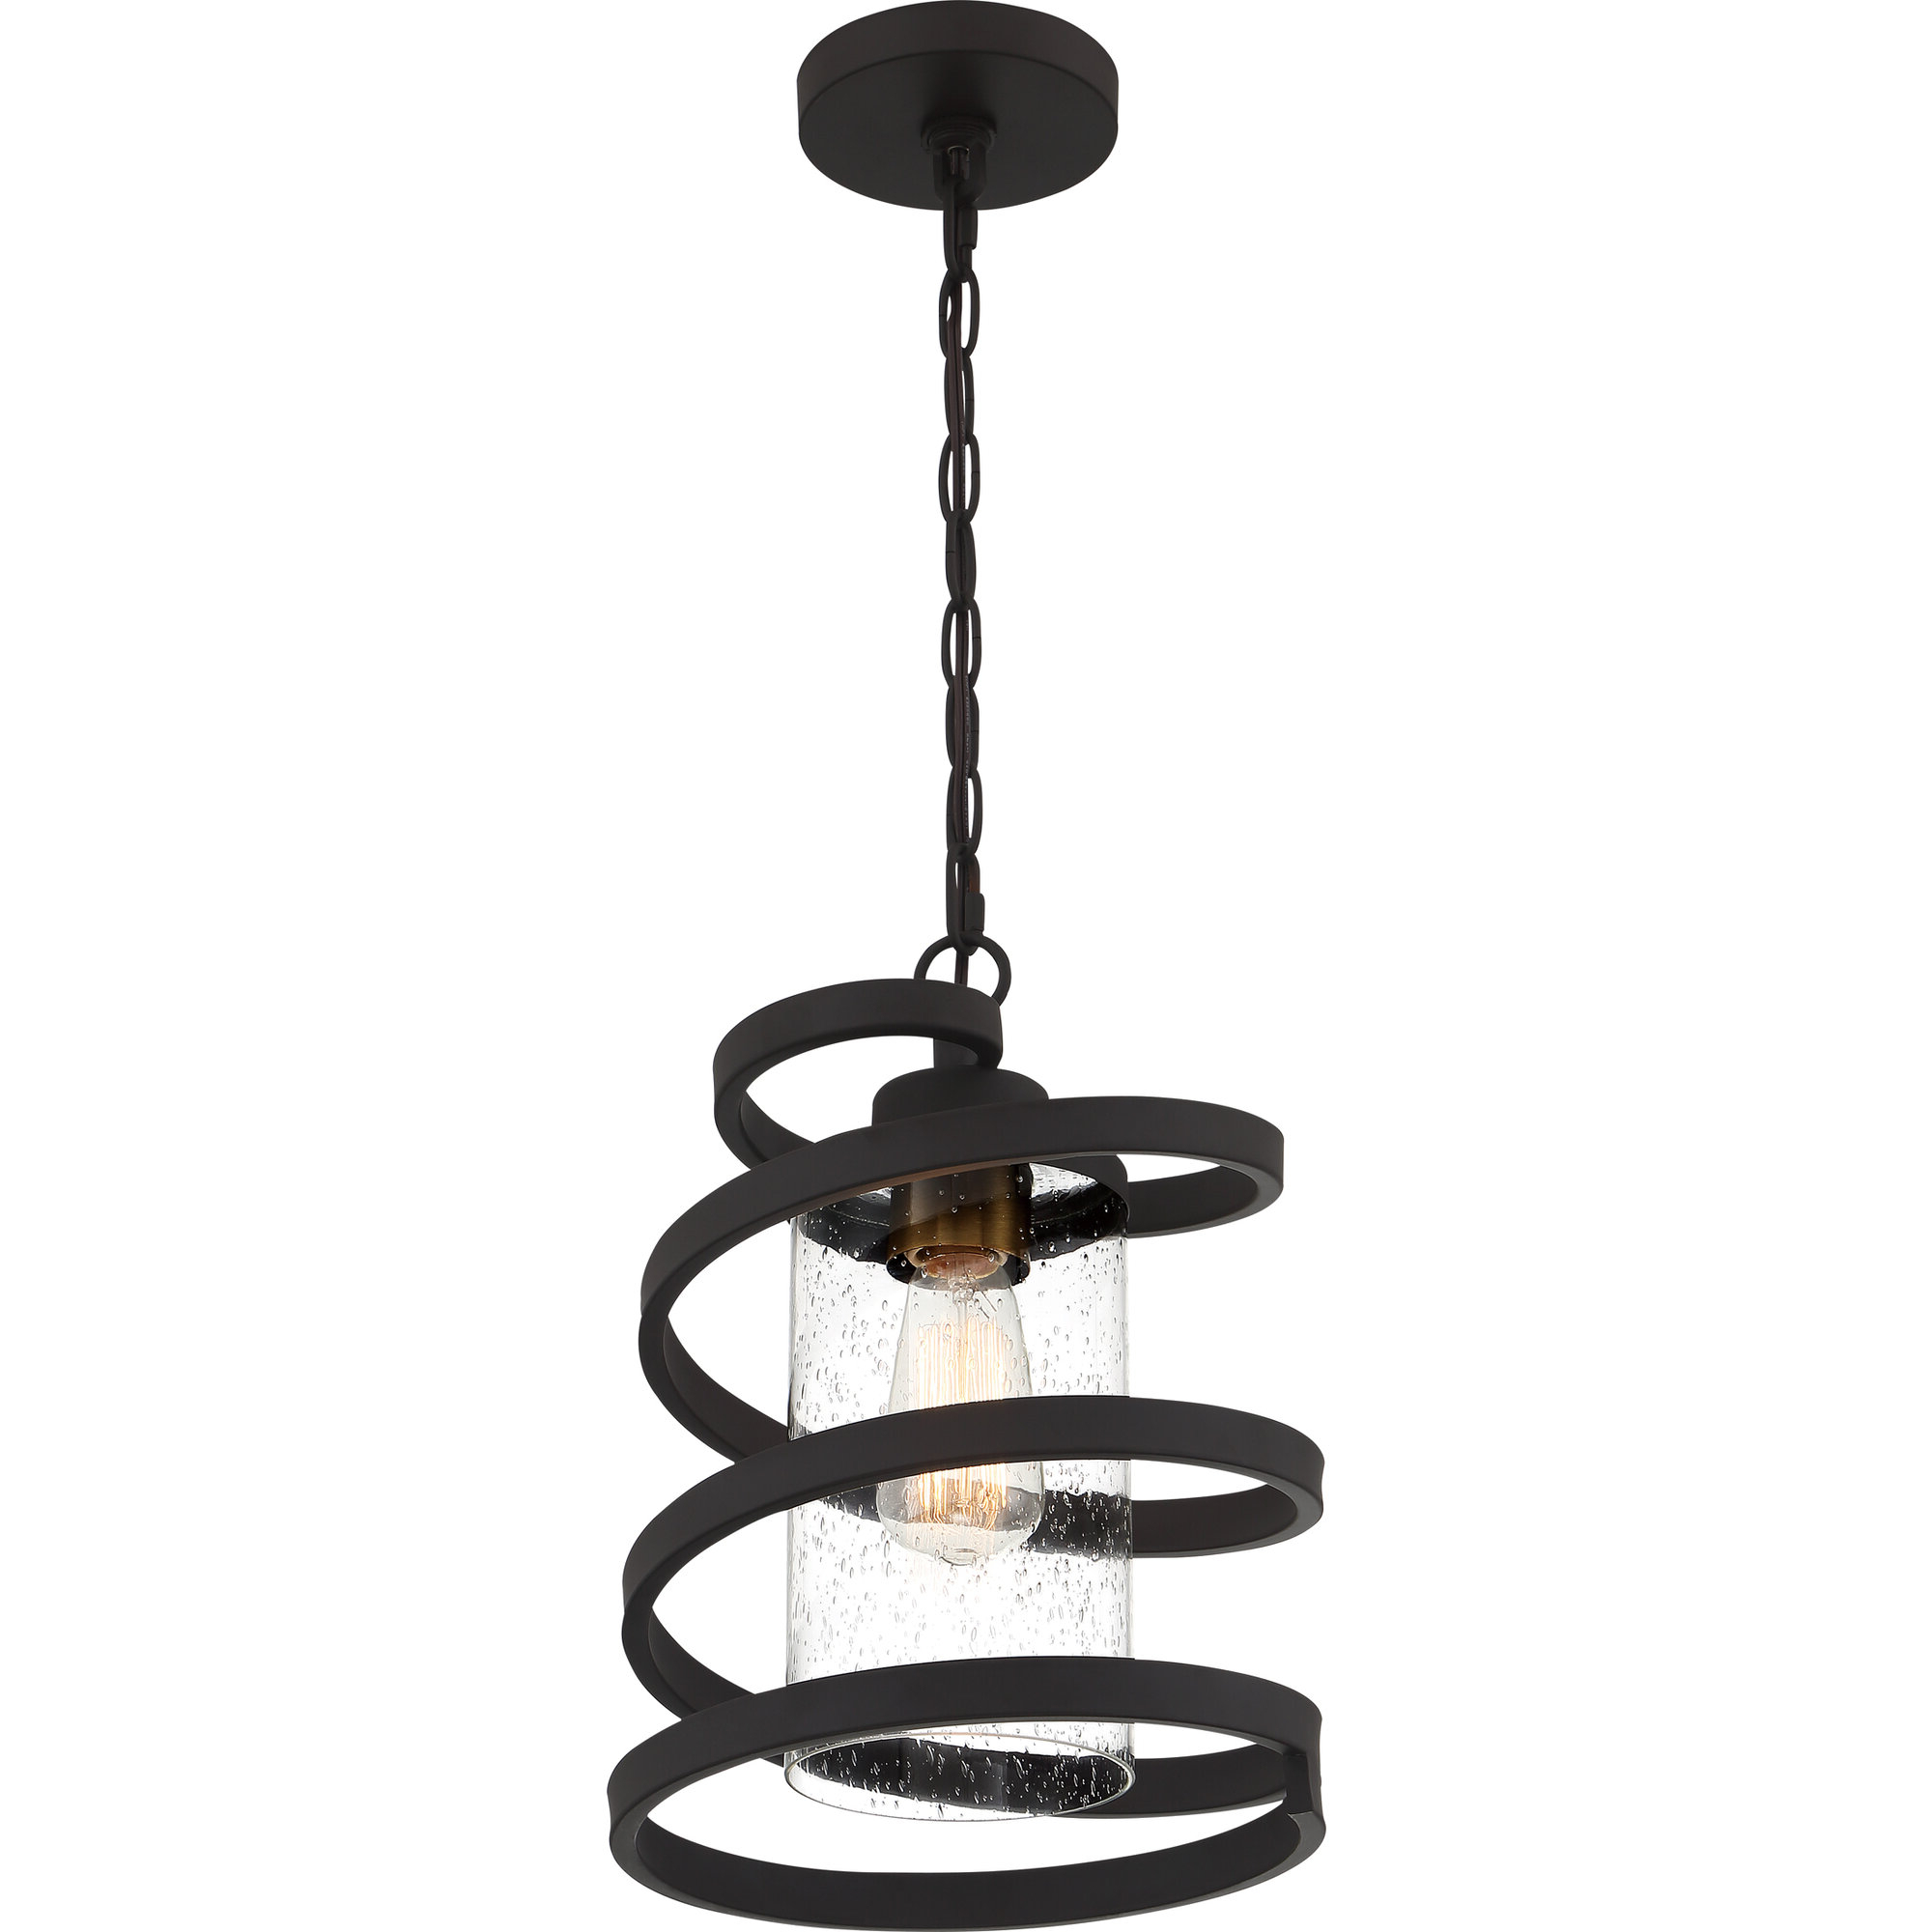 Fashionable Angelina 1 Light Single Cylinder Pendants Within Details About Ivy Bronx Odis 1 Light Geometric Pendant (View 14 of 25)